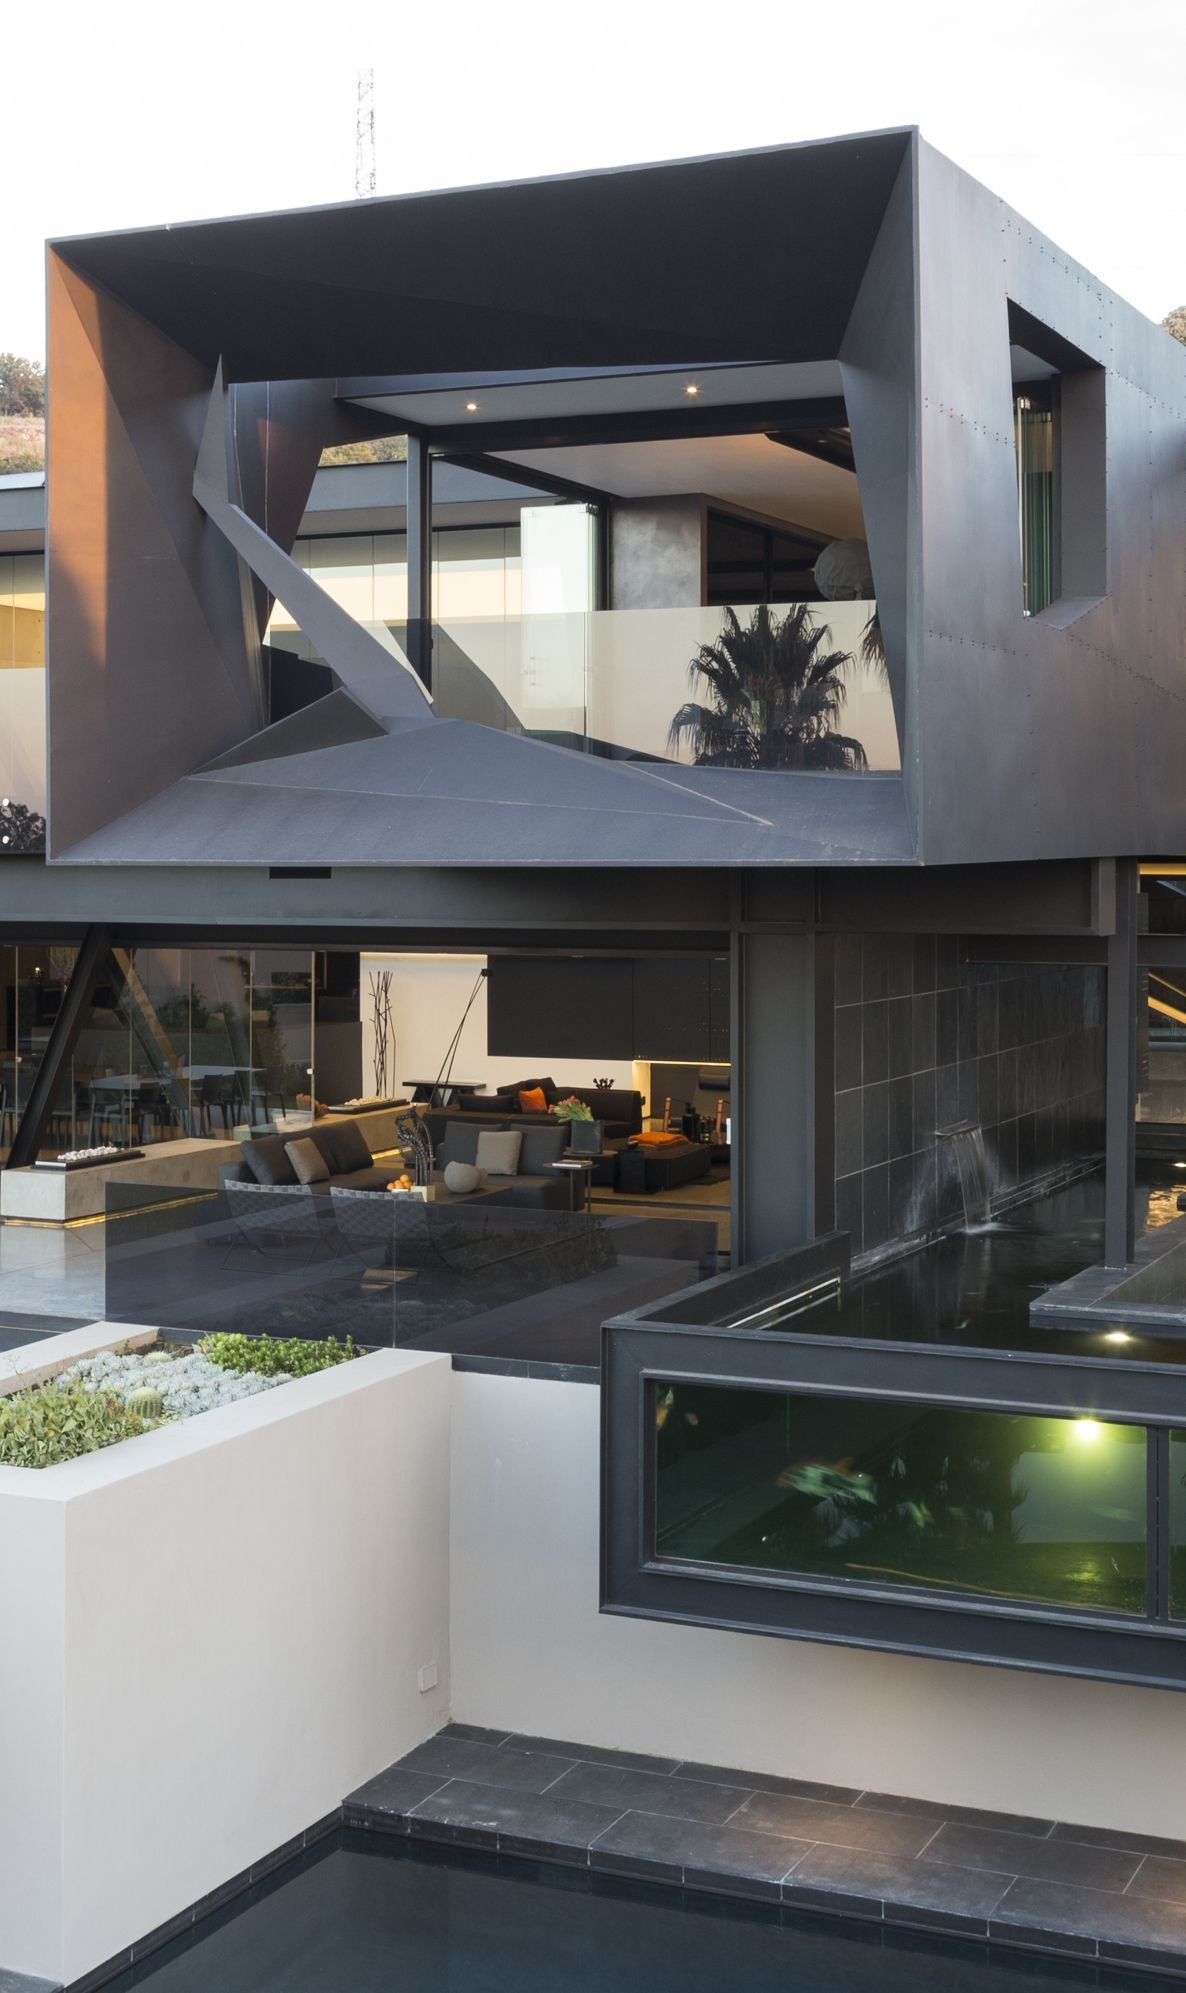 New Beautiful Houses Images Awesome Best Houses In the World Amazing Kloof Road House